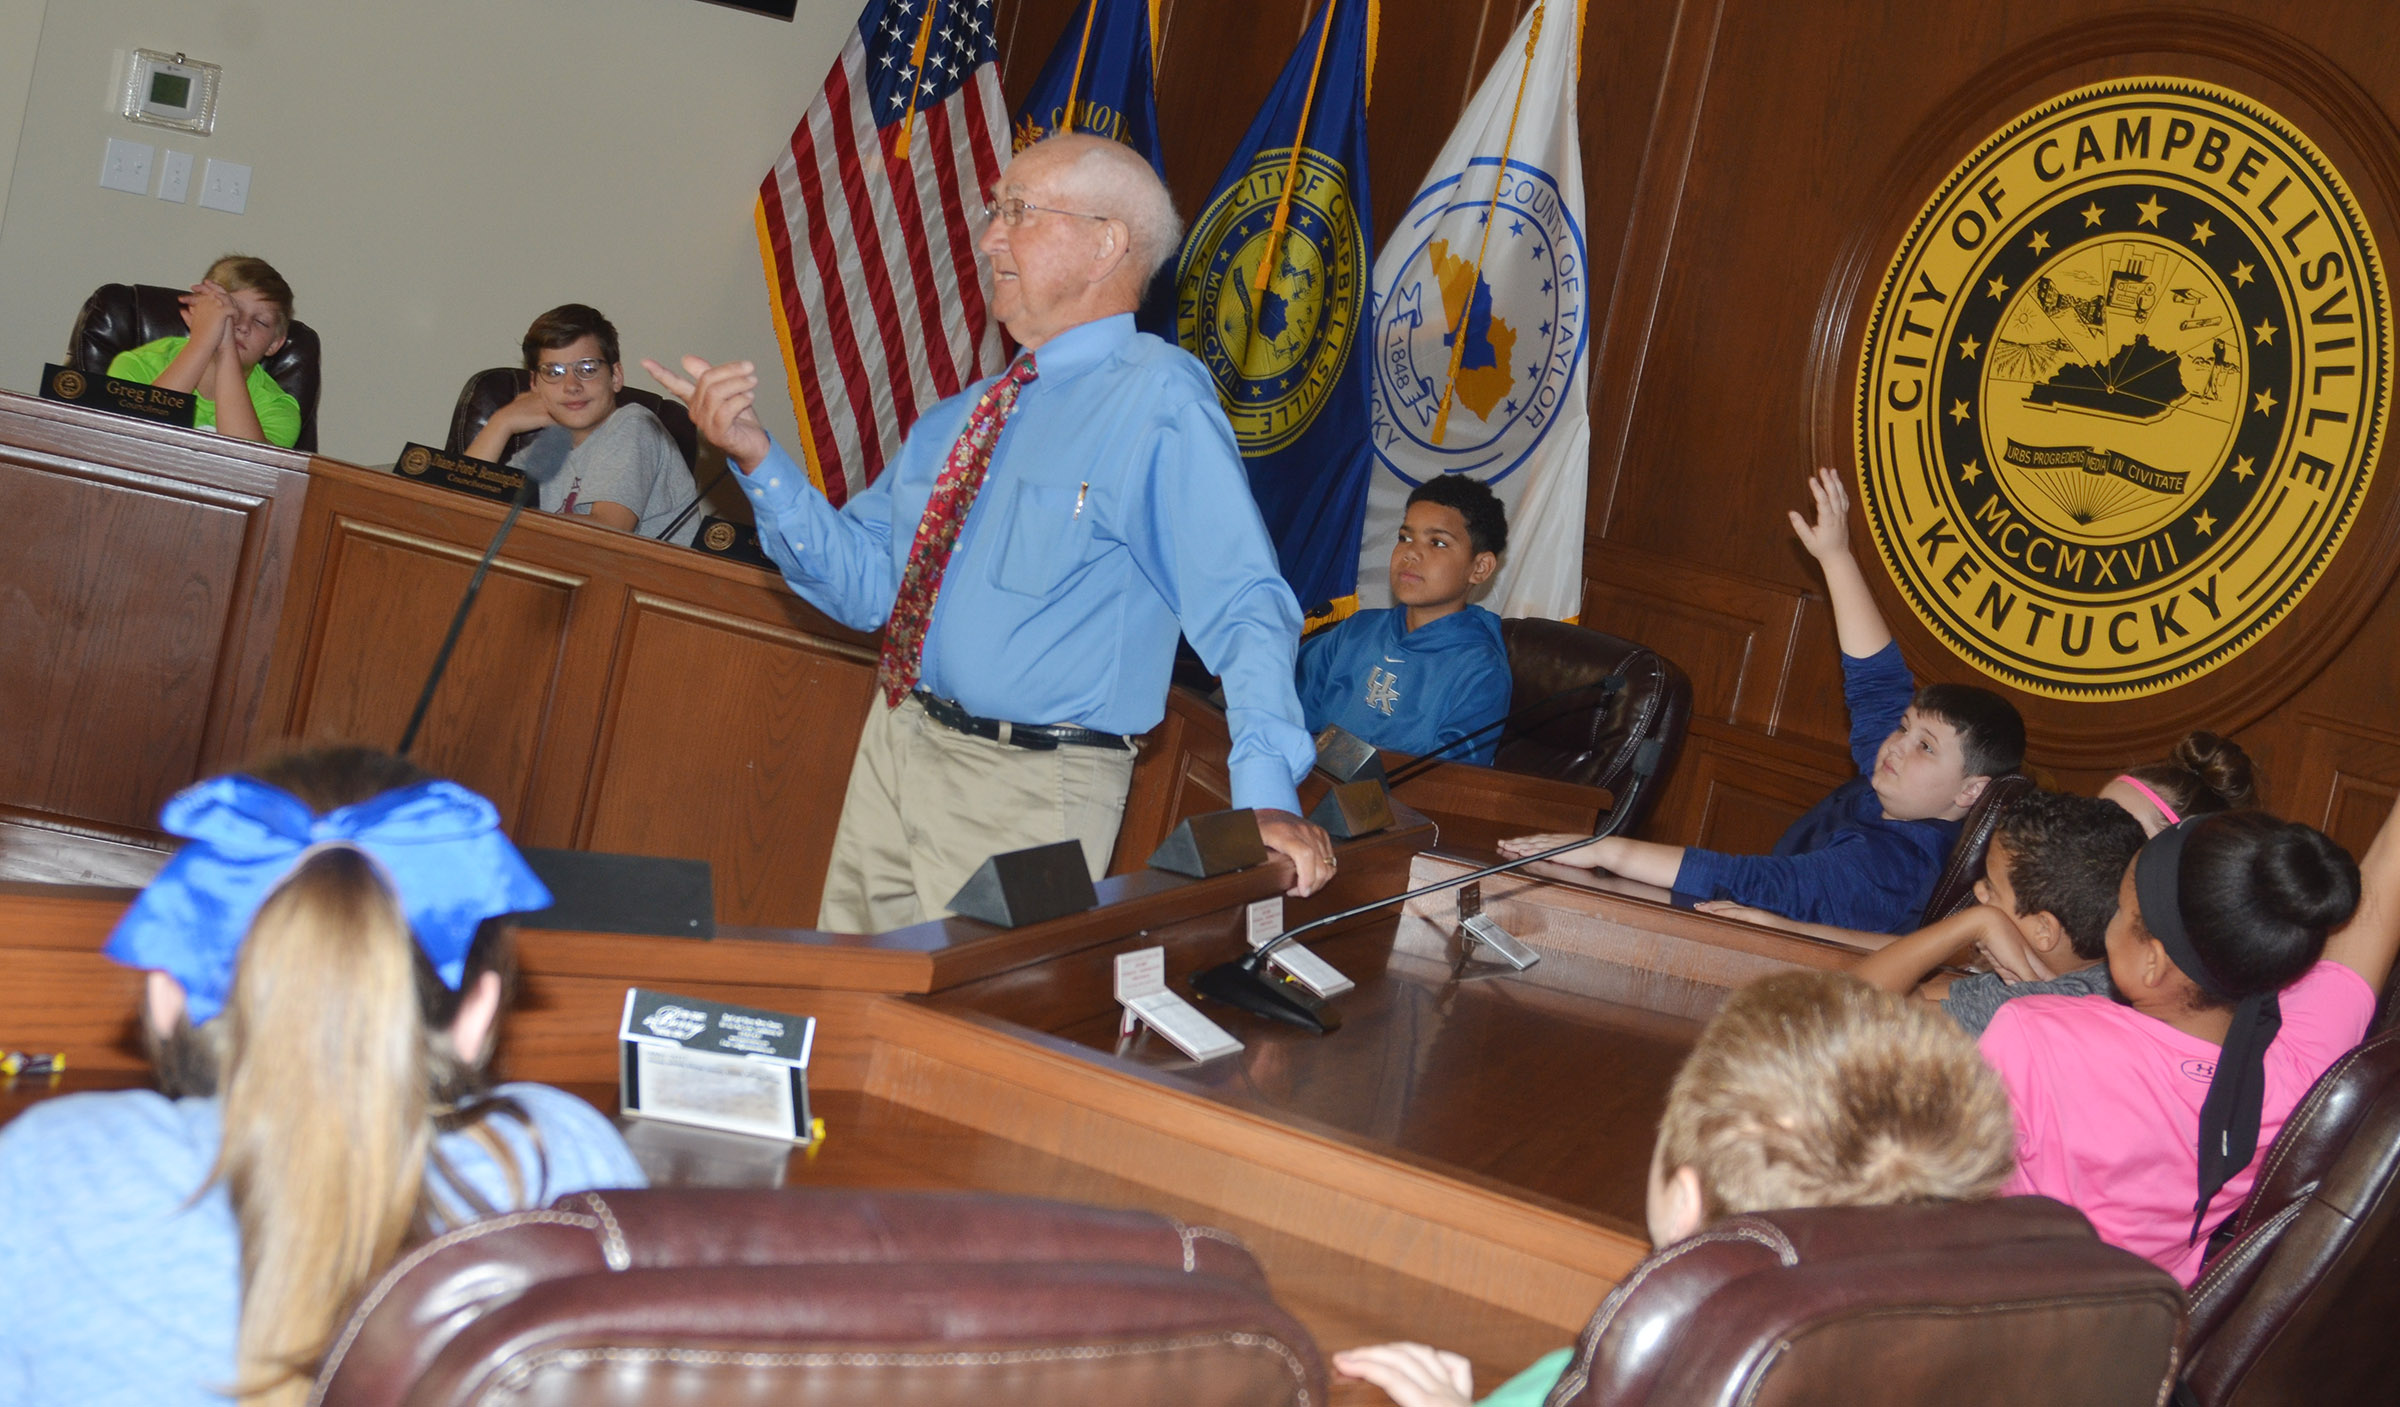 Former Campbellsville Mayor Paul Osborne talks to CMS fifth-graders about his experiences as the city's leader.